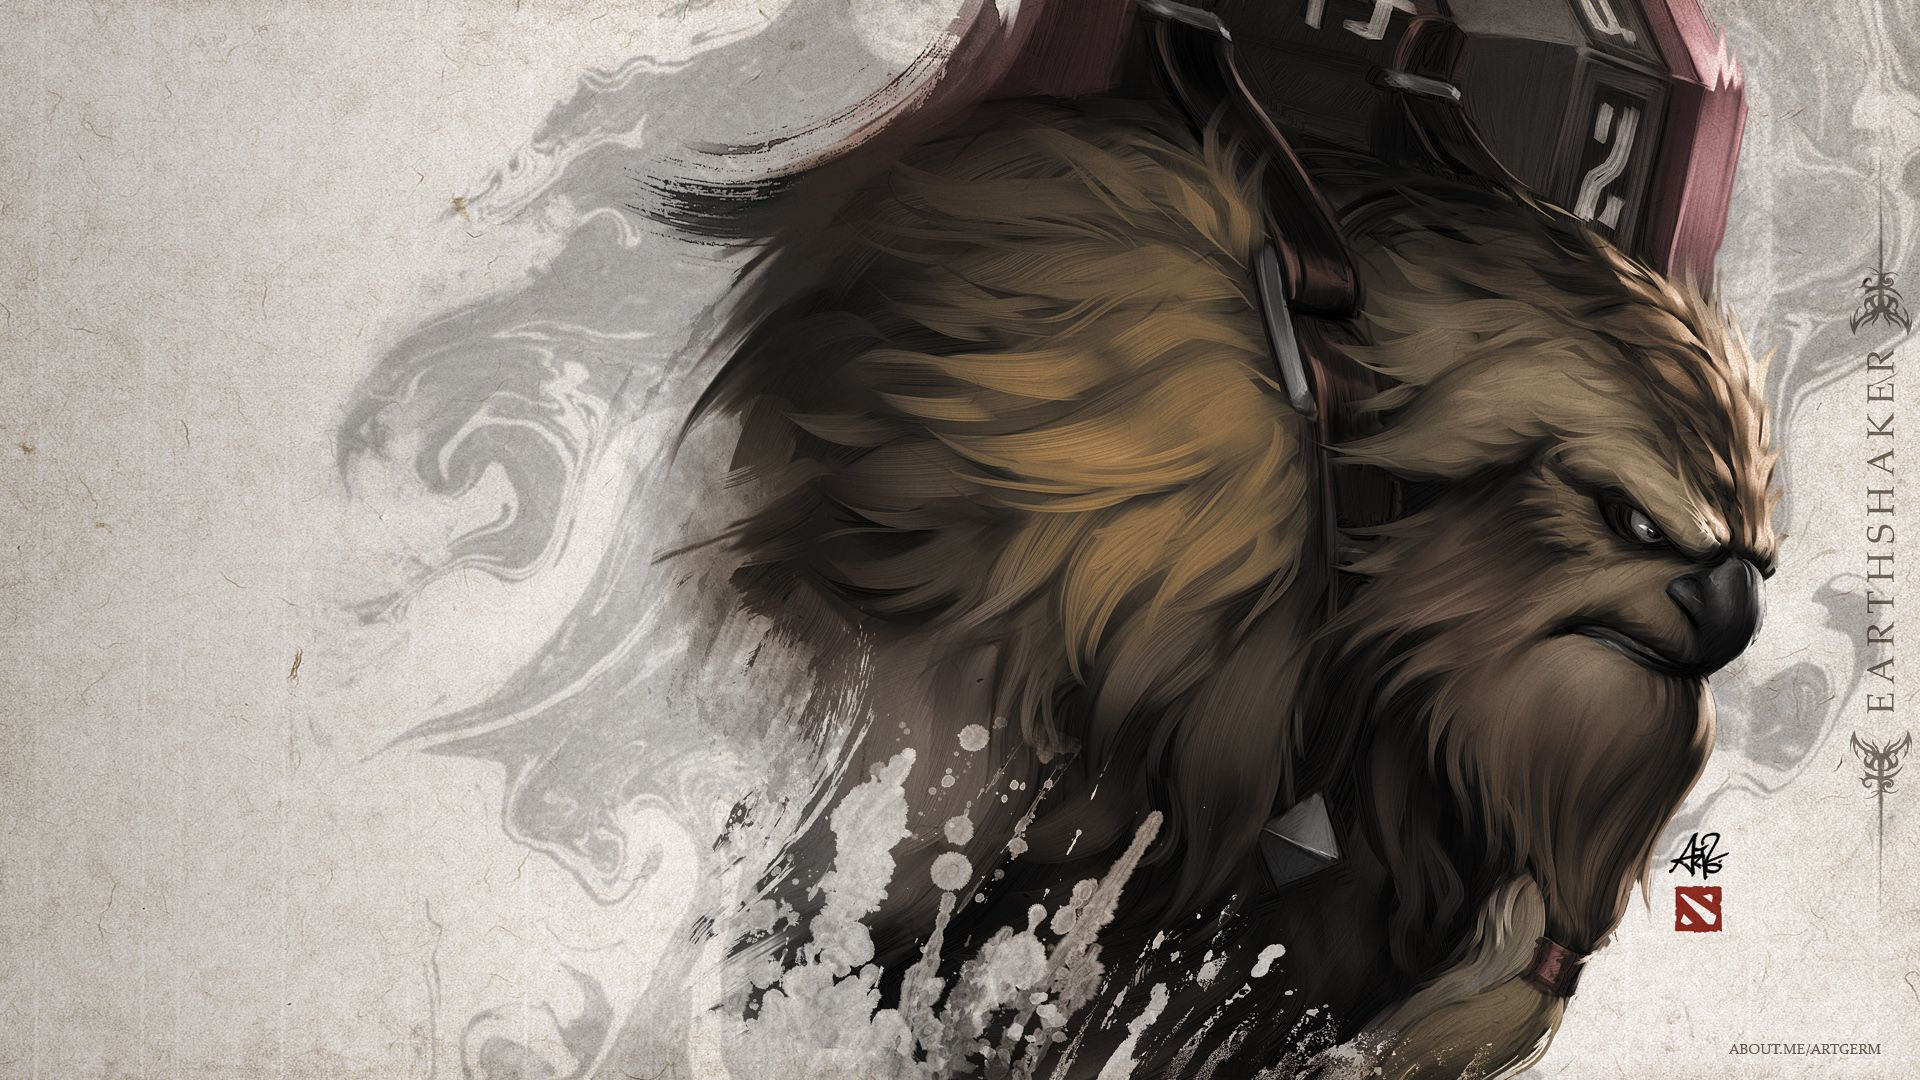 Steam Workshop :: Earthshaker Portrait - Poster | Dota 2 wallpapers hd, Dota  2 wallpaper, Art